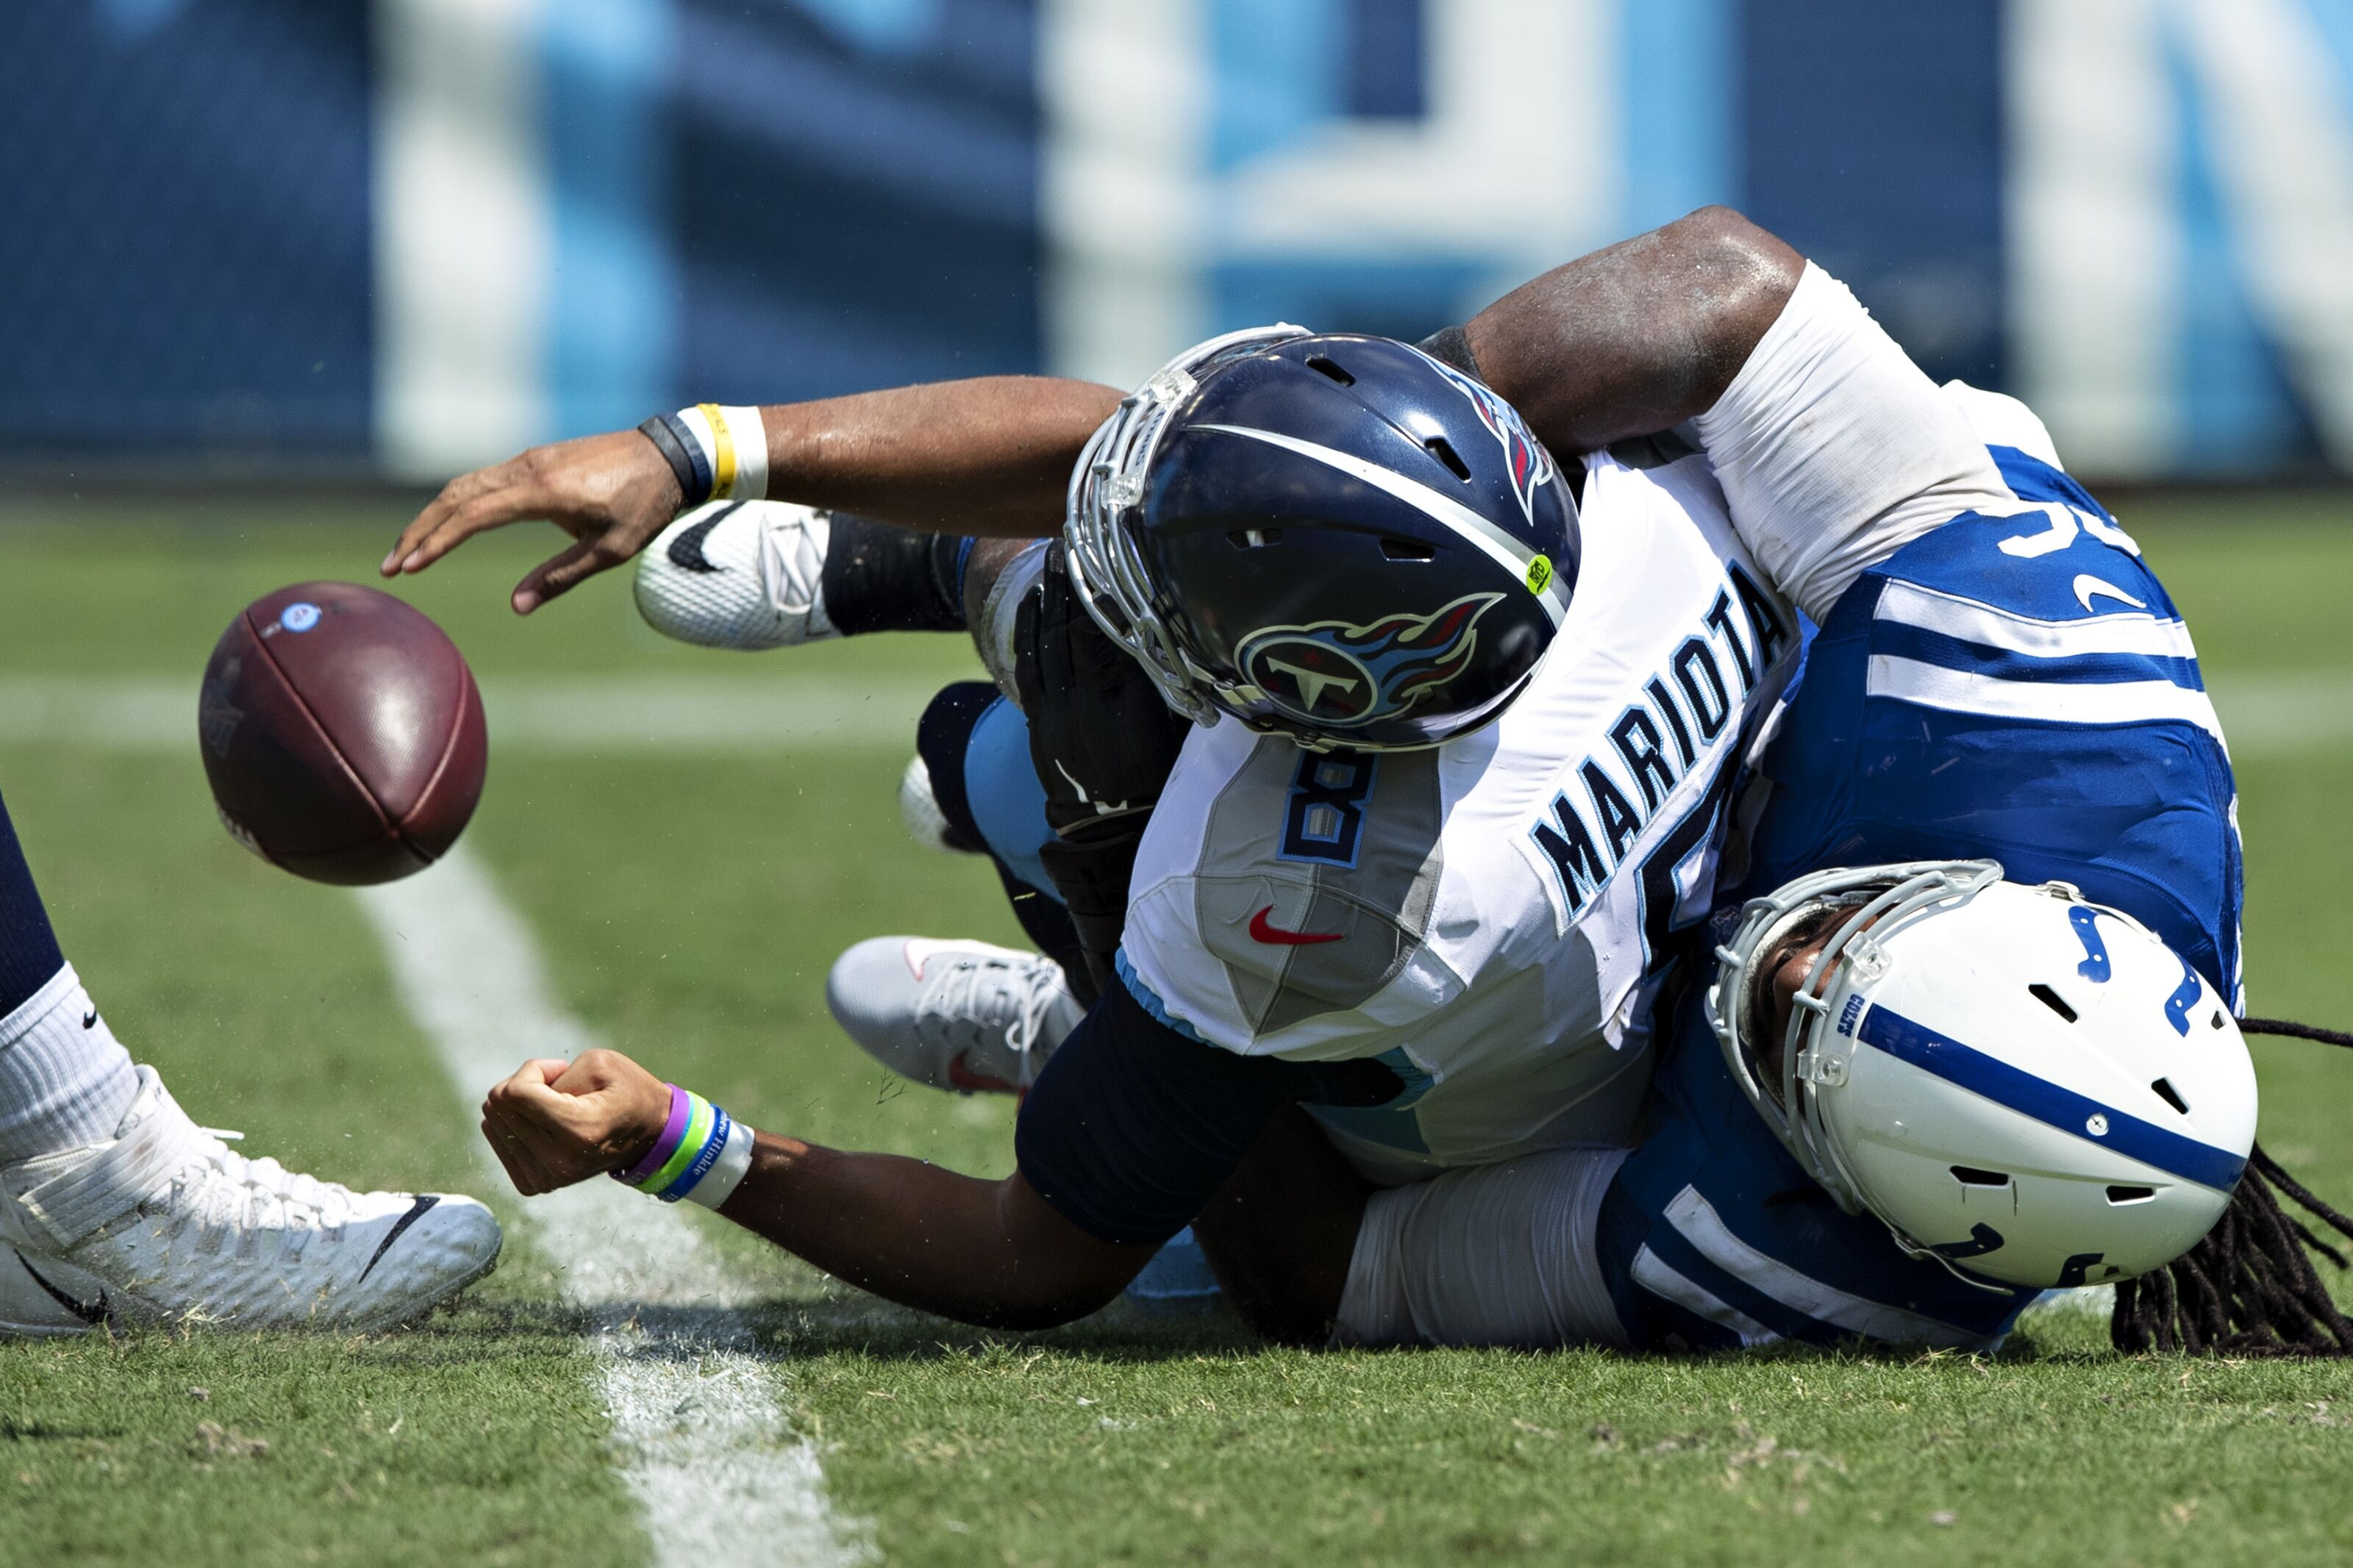 AFC South power rankings Week 3: Tennessee Titans knocked off top spot